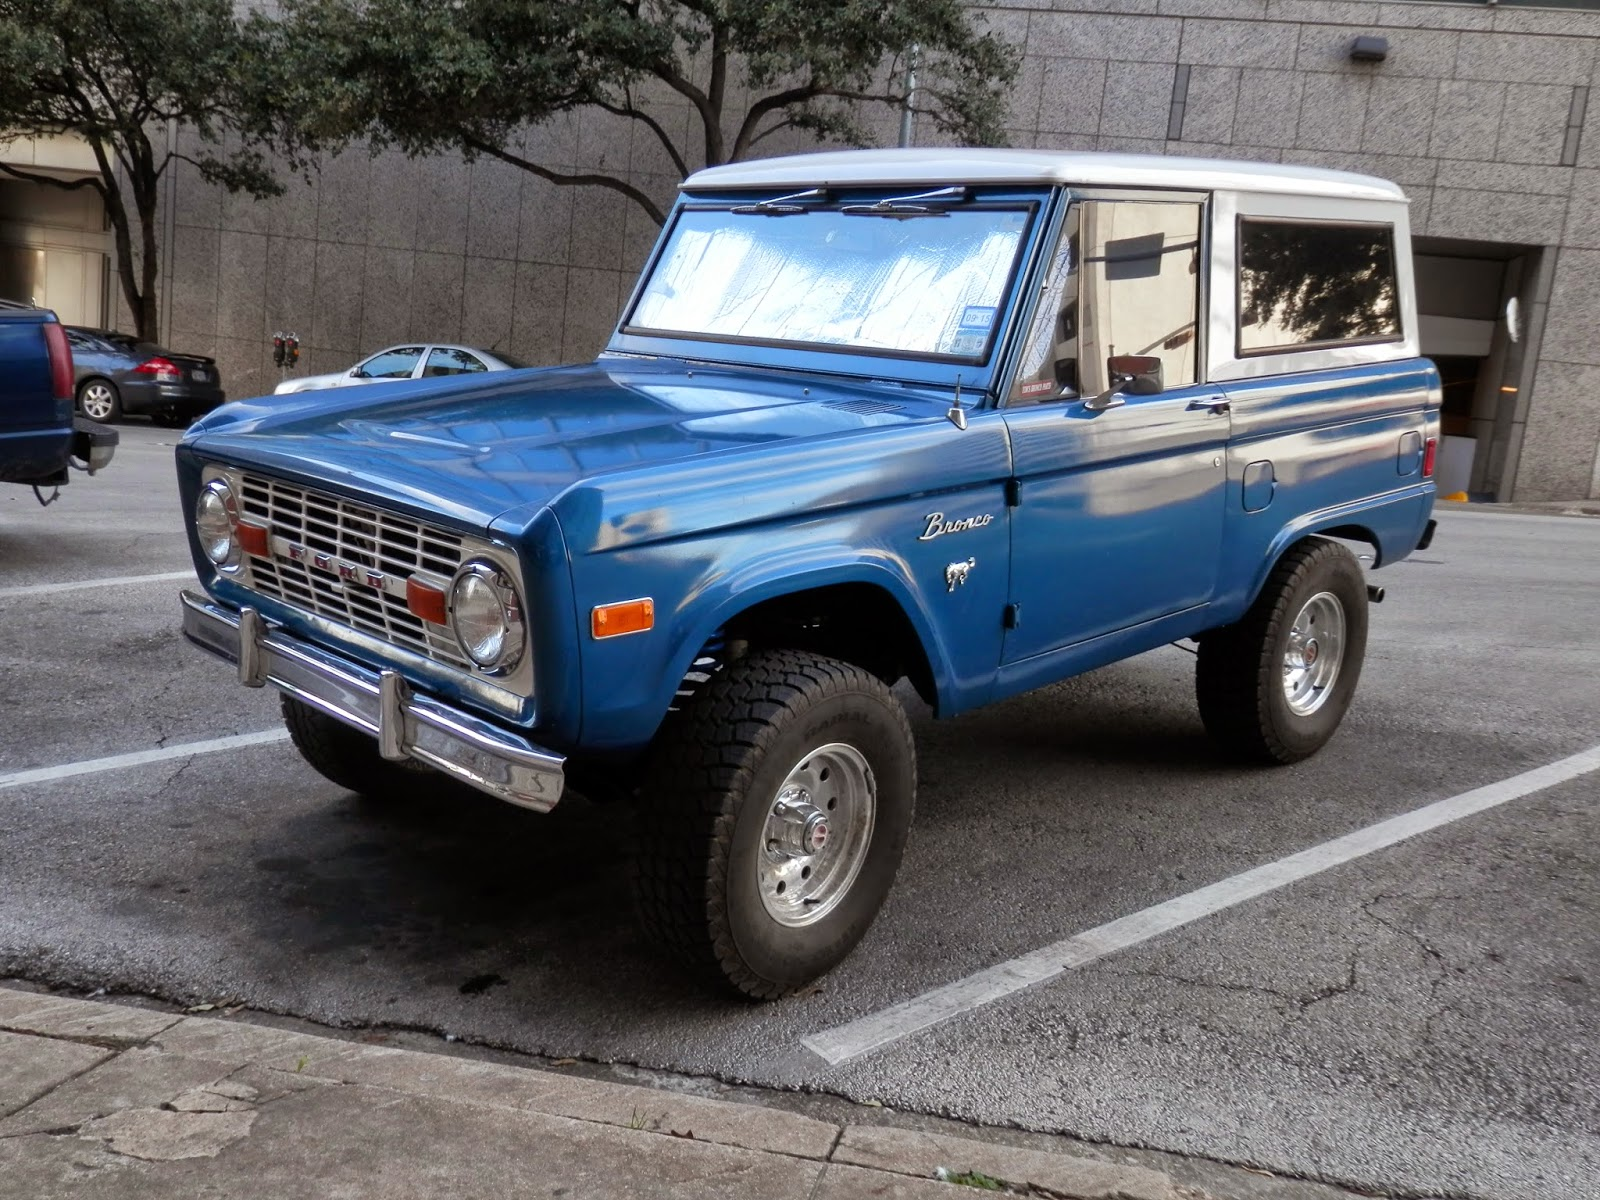 Shifting Gears January 2015 1970 Ford Bronco Full Size The Debuted In 1966 As A Compact Off Roader 170 Cubic Inch Straight 6 Was Available Along With More Powerful 289 V8